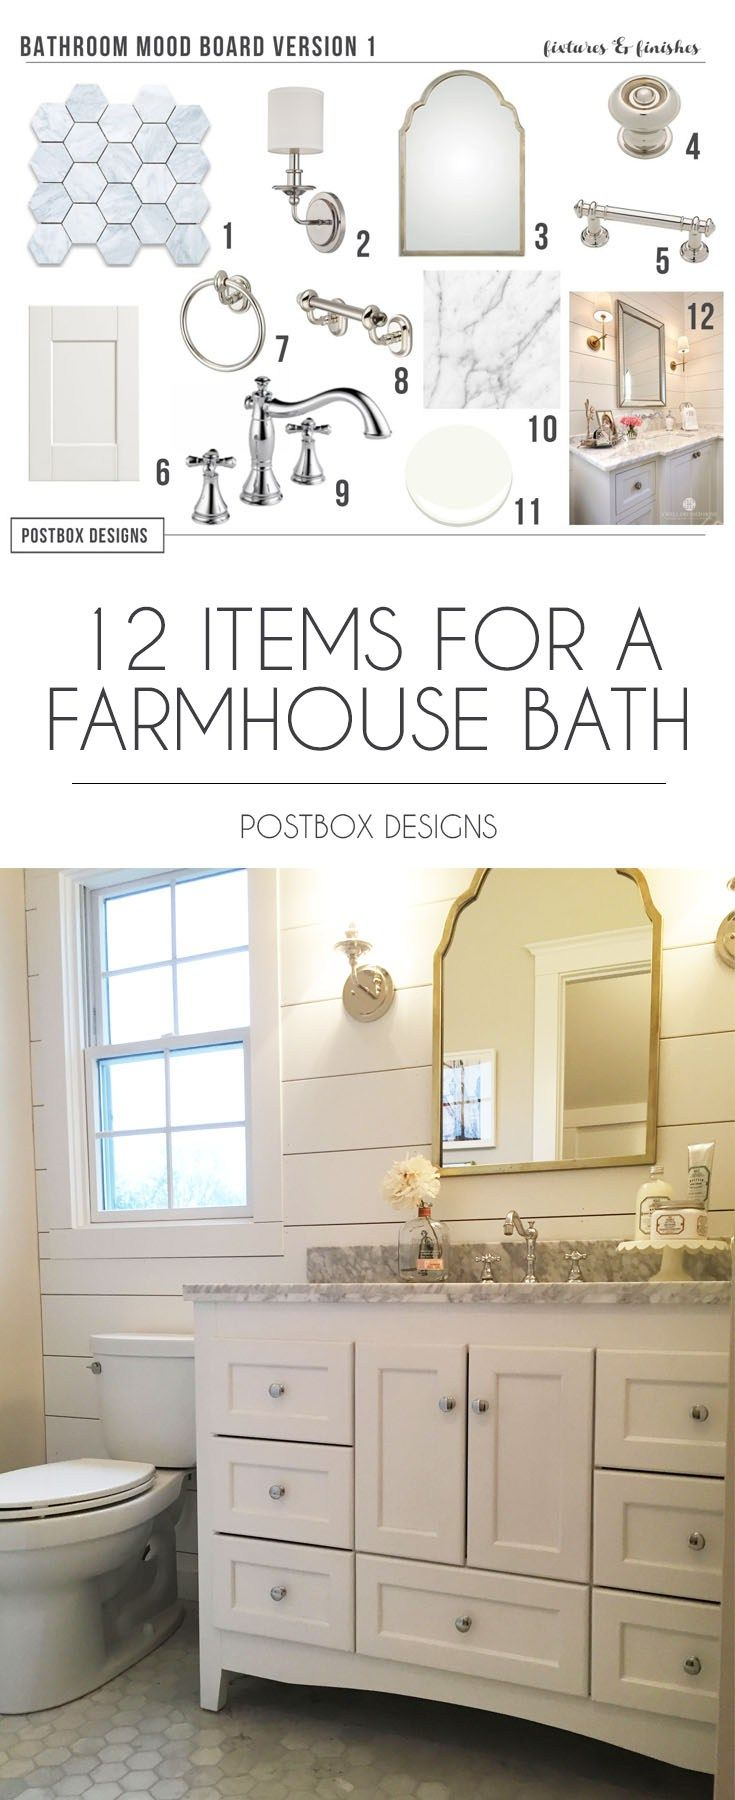 Design Jump Start Week 1 Free Guide 75 Ways To Update Your Bathroom Without A Full Remodel Bathroom Design Bathrooms Remodel Bathroom Interior Design